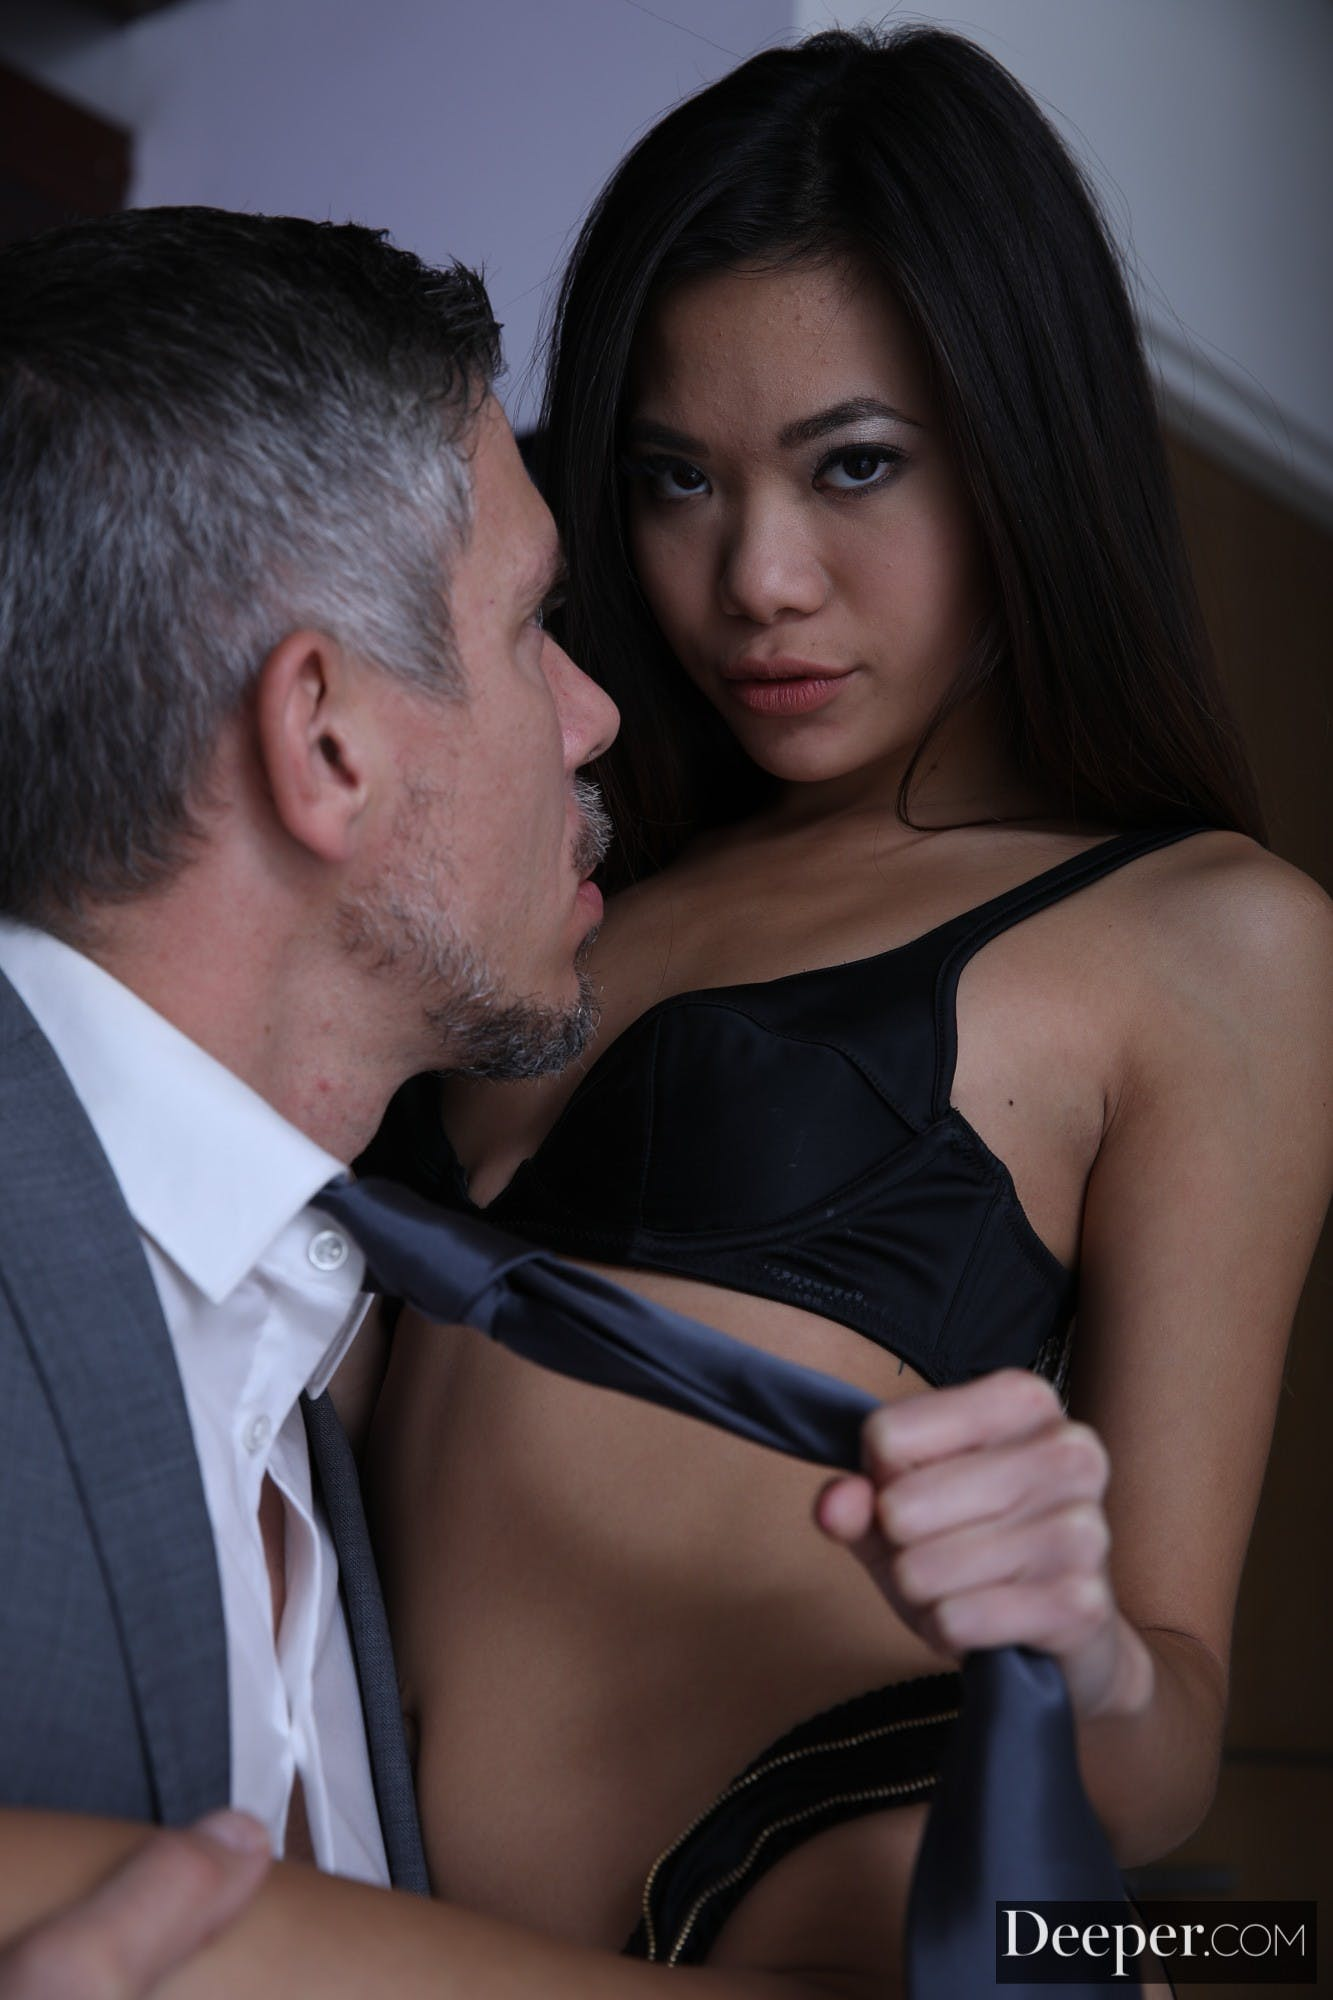 Close up image of Vina Sky pulling Mick Blue's tie and choking him with it.